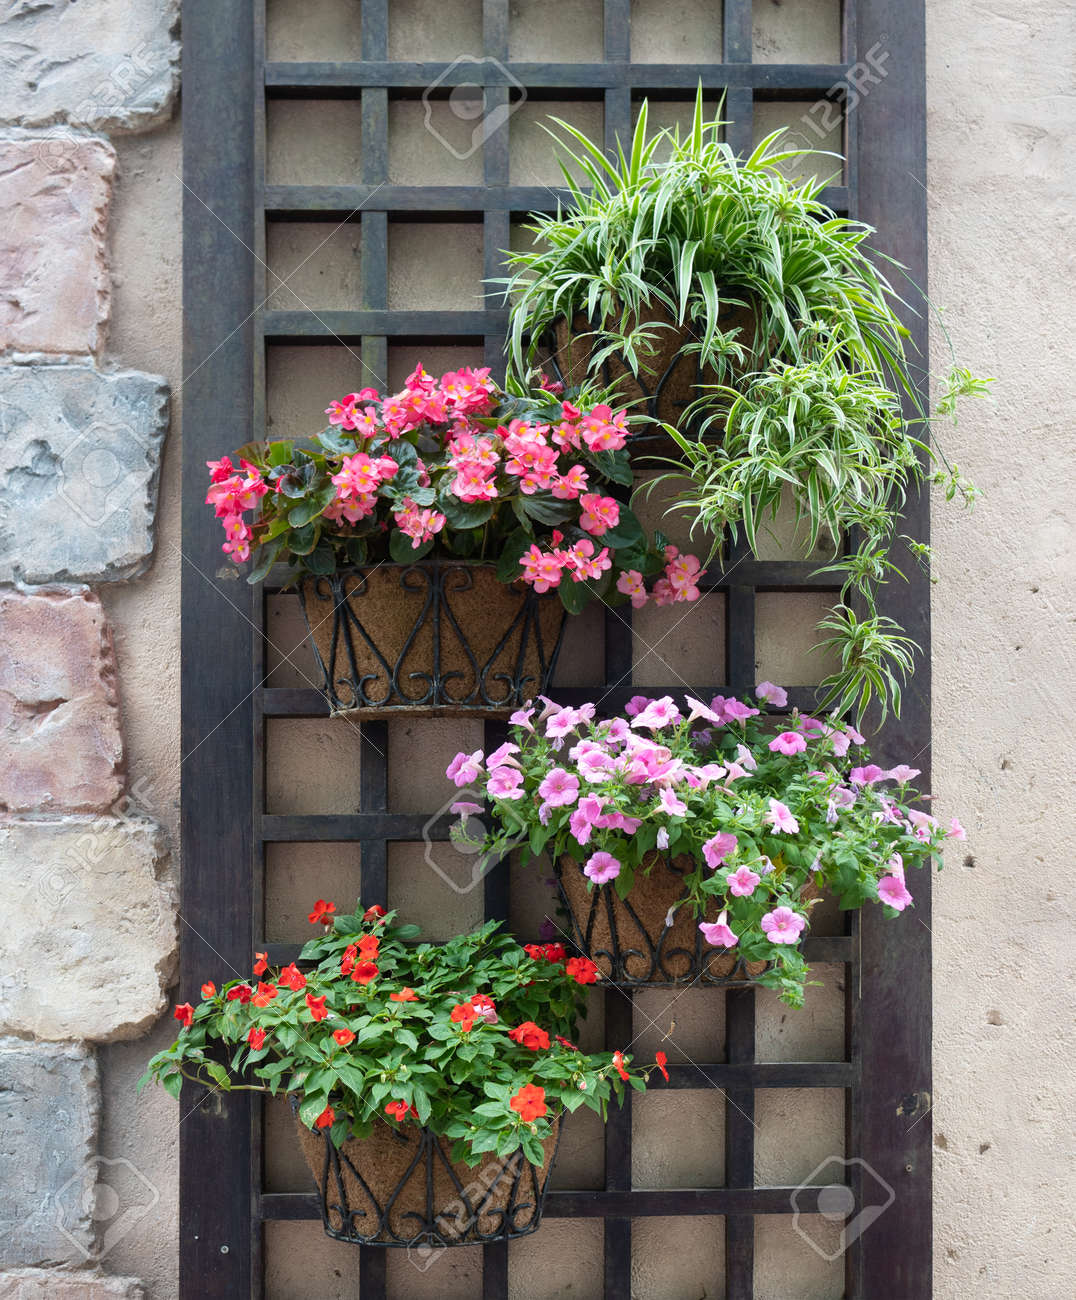 colourful flower pots hanging on a wall - 121845765